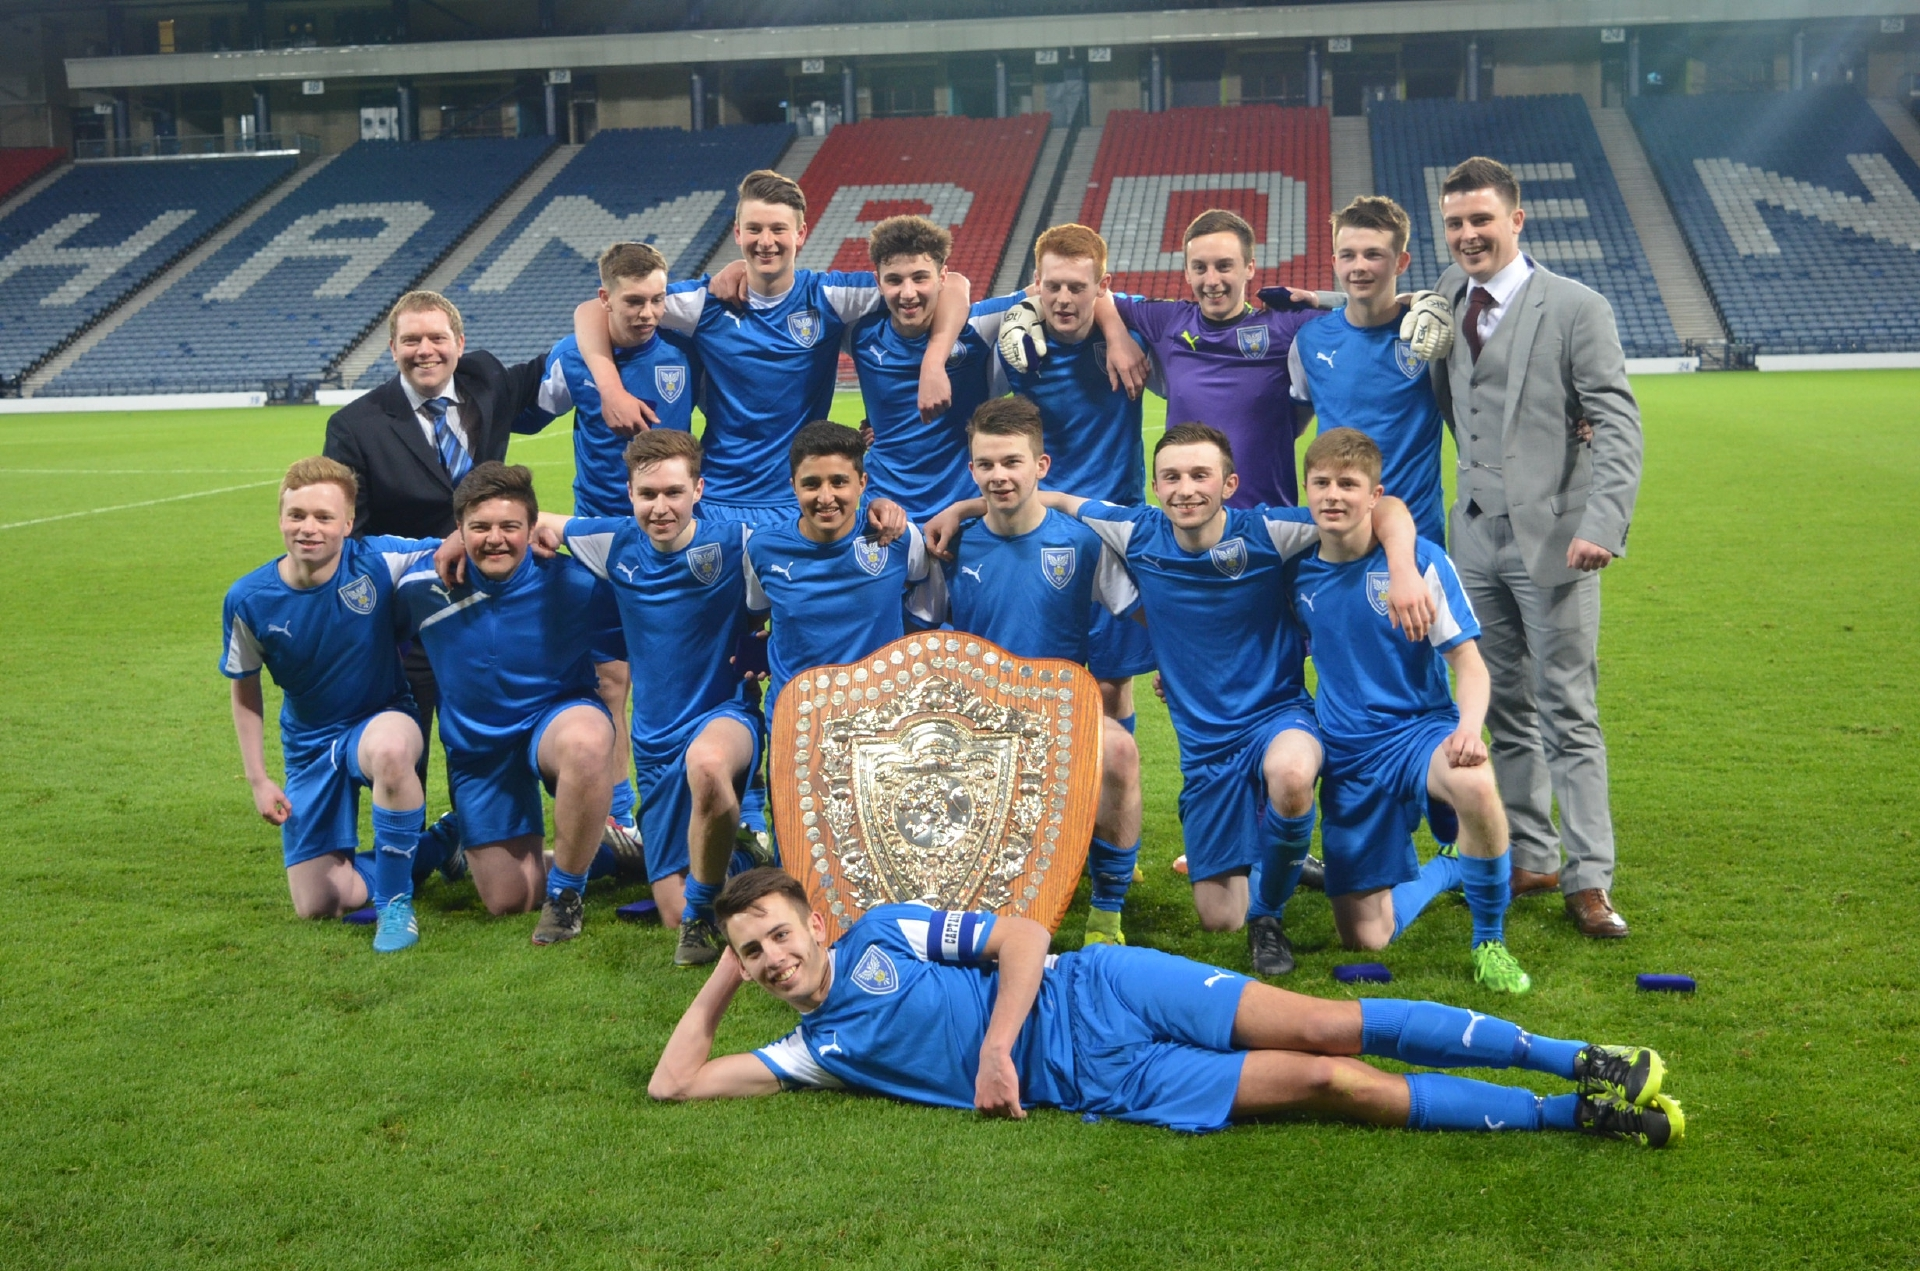 Senior pupils from St John's RC High School pose on the pitch at Hampden Park after their historic schools cup win.